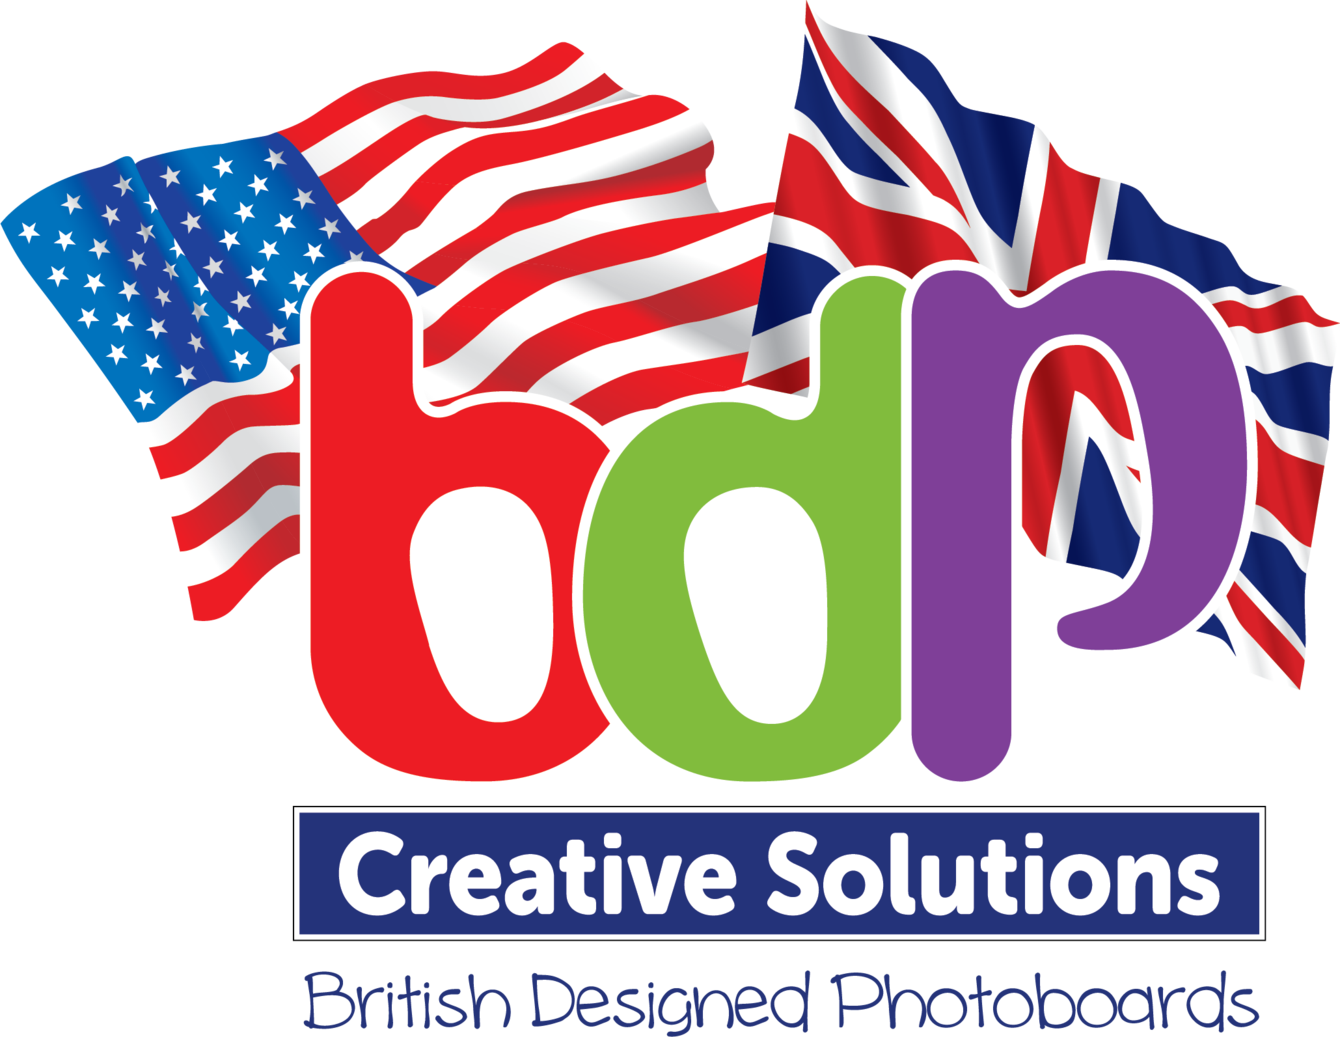 BDP Creative Solutions